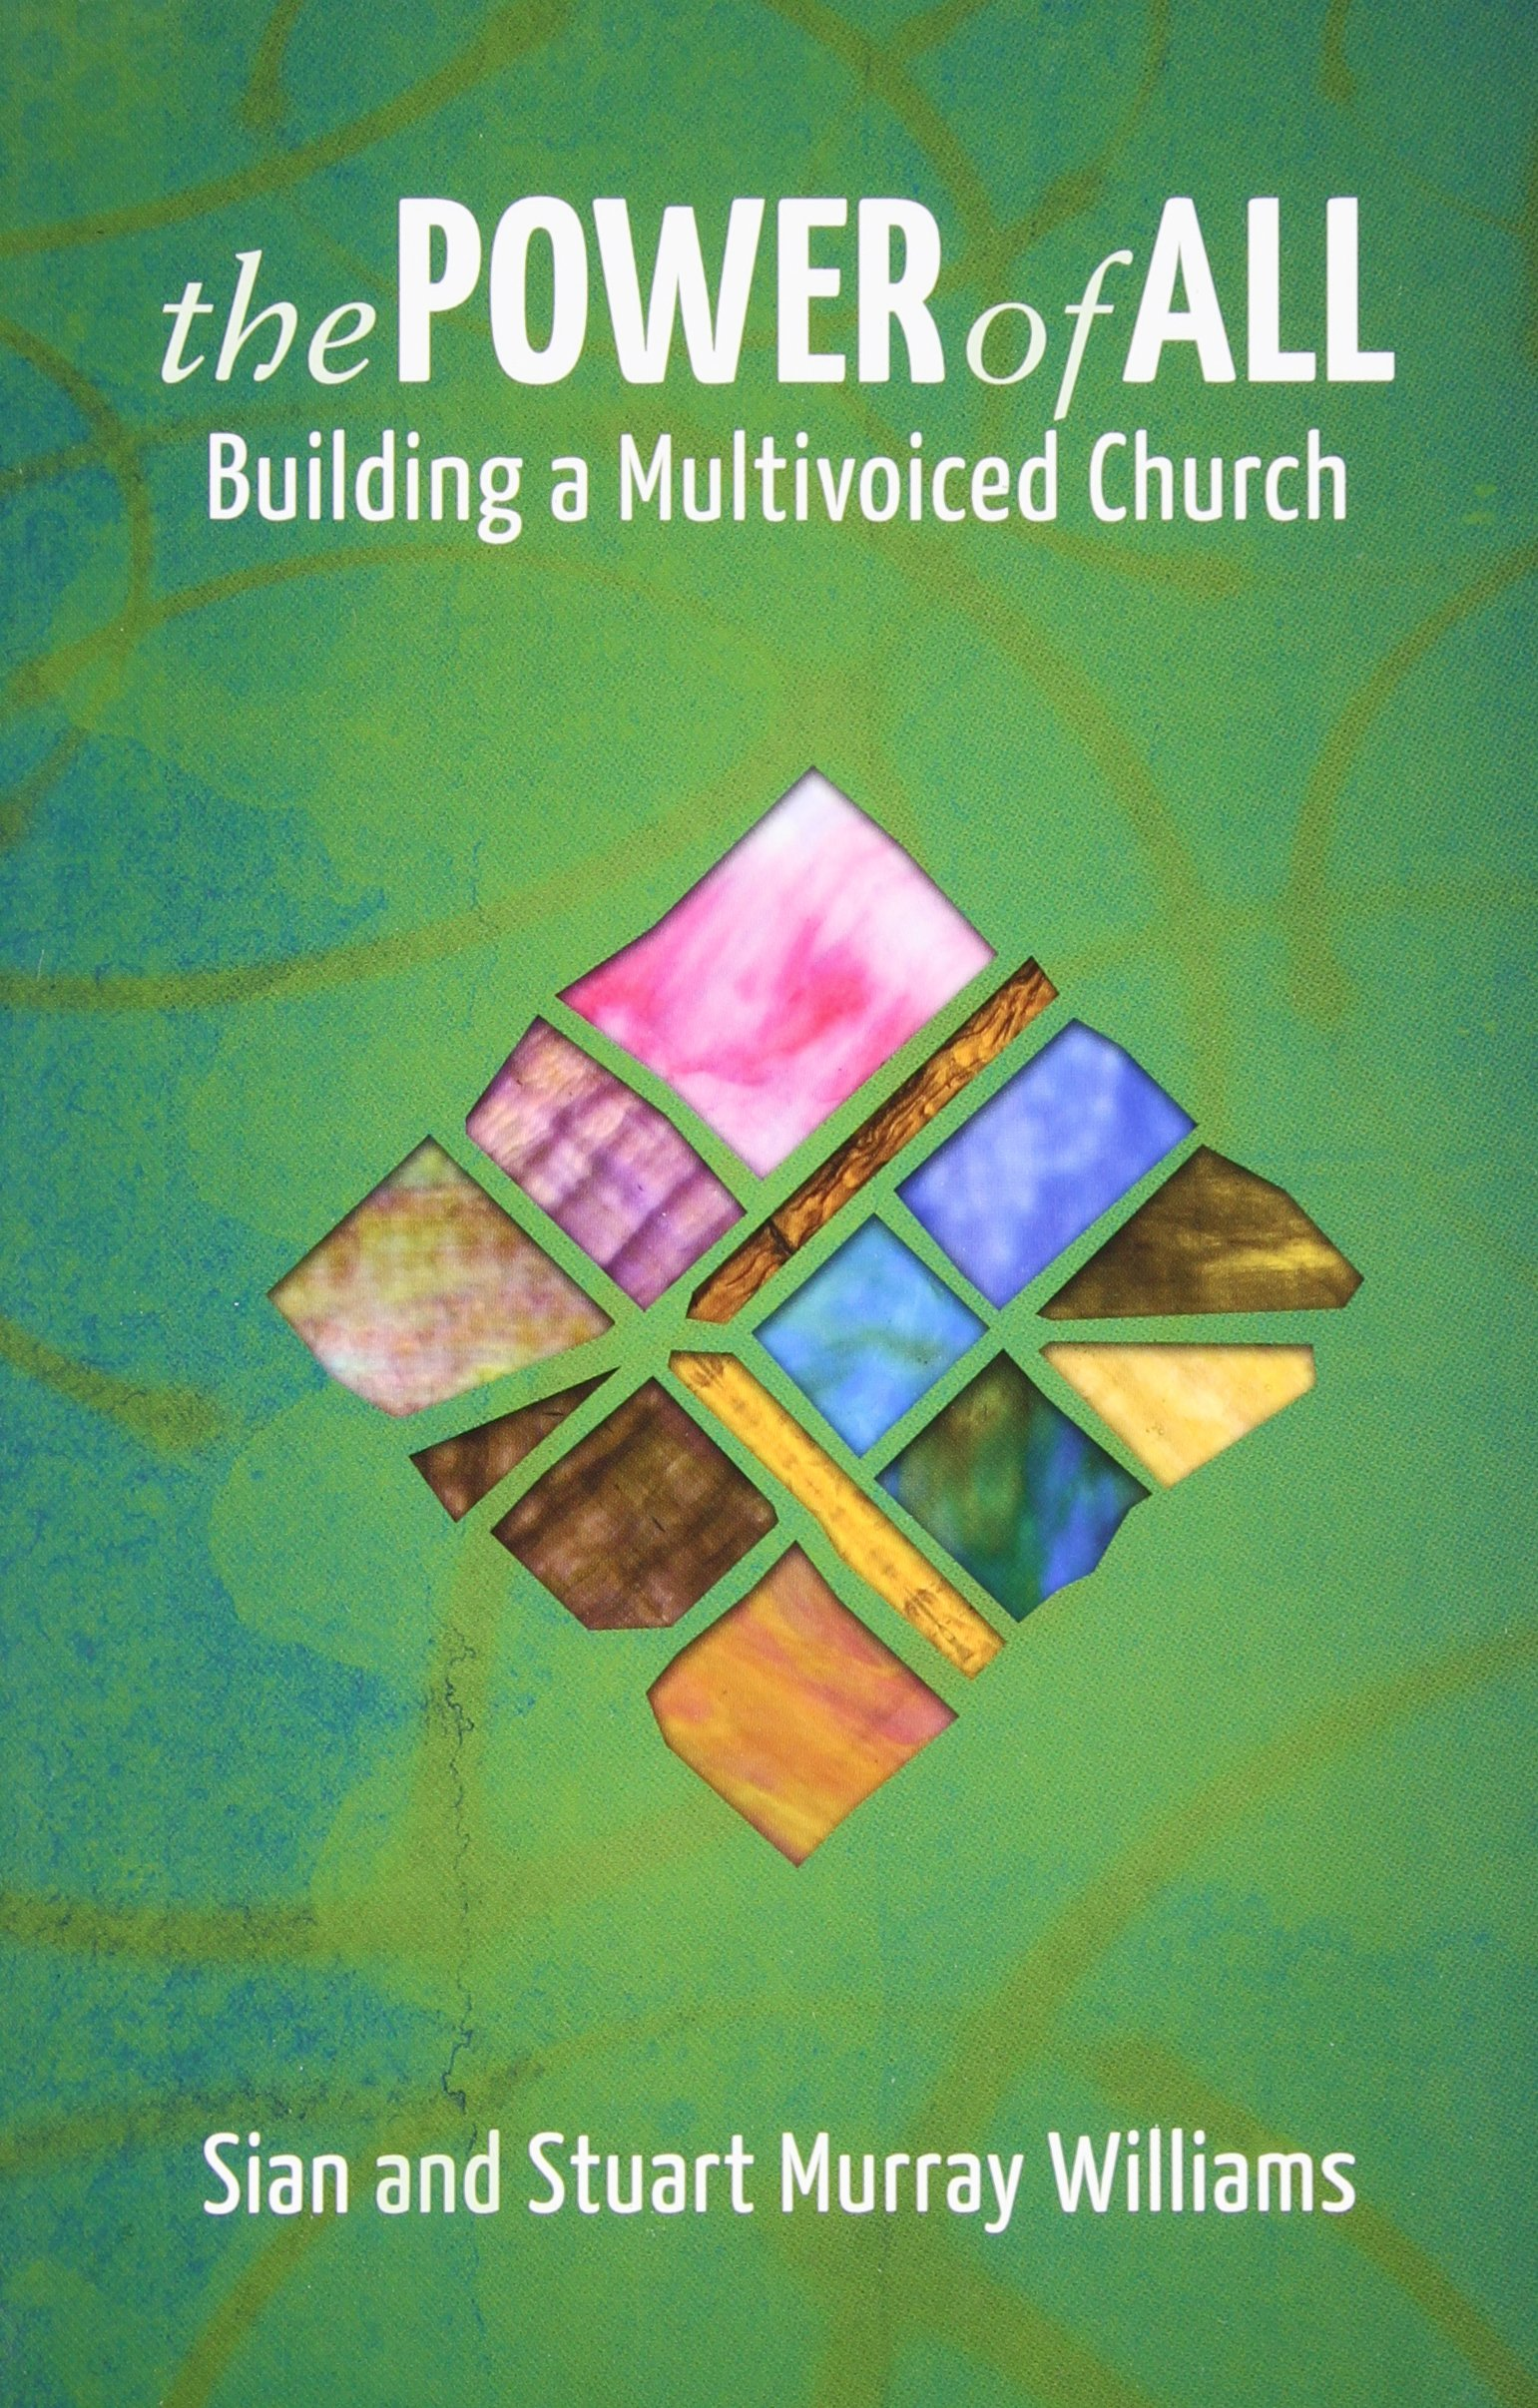 Download Power of All, The: Building a Multivoiced Church PDF